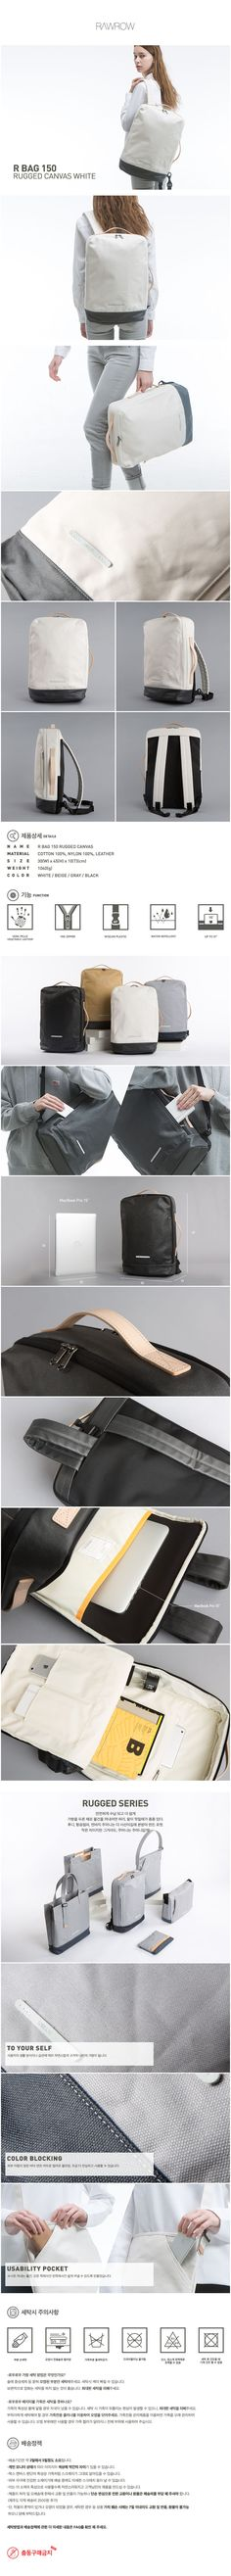 R BAG 150 RUGGED CANVAS WHITE                                                                                                                                                                                 More